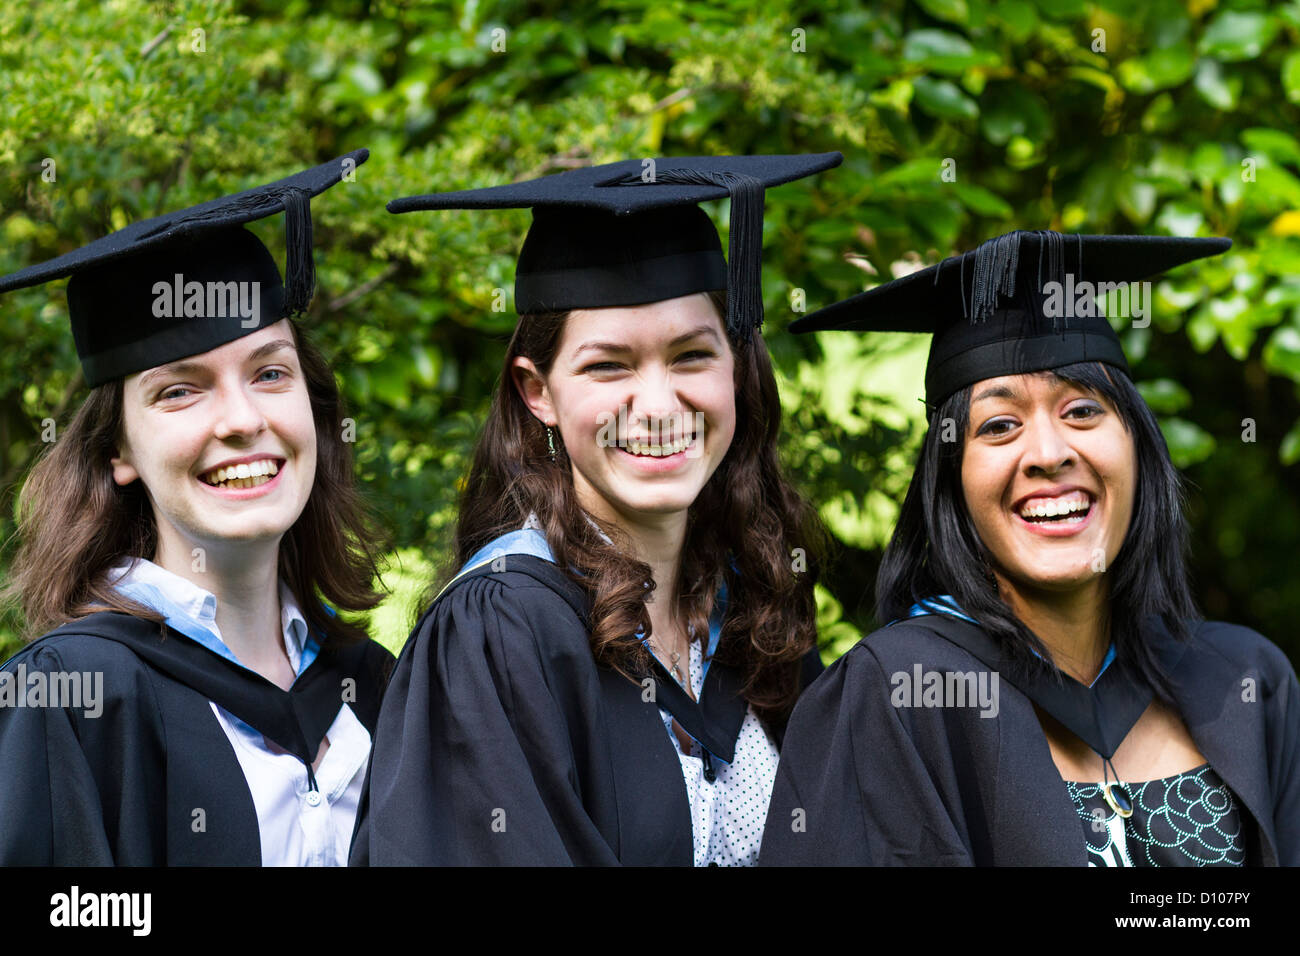 Three girls laugh whilst wearing a graduant mortar board and gown ...